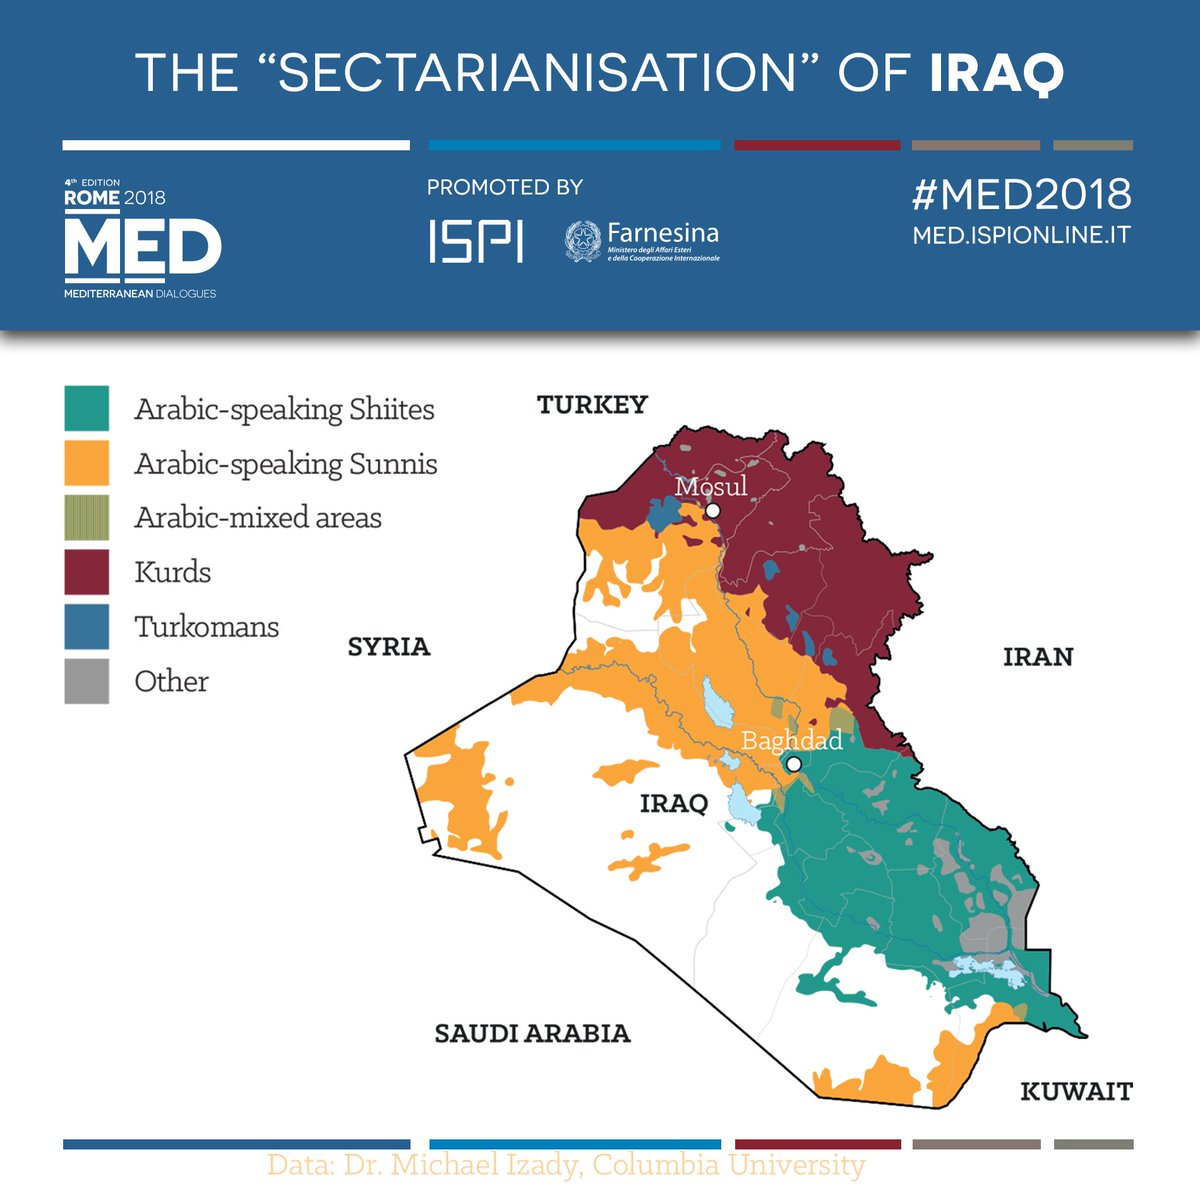 #Iraq is still a divided country where conflicts are caused by religious, ethnical and socio-economic differences. This picture tries to sum them up. This topic will be discussed during the 4th edition of #MED2018 in Rome. Further information here: https://t.co/VogIE1fD5j